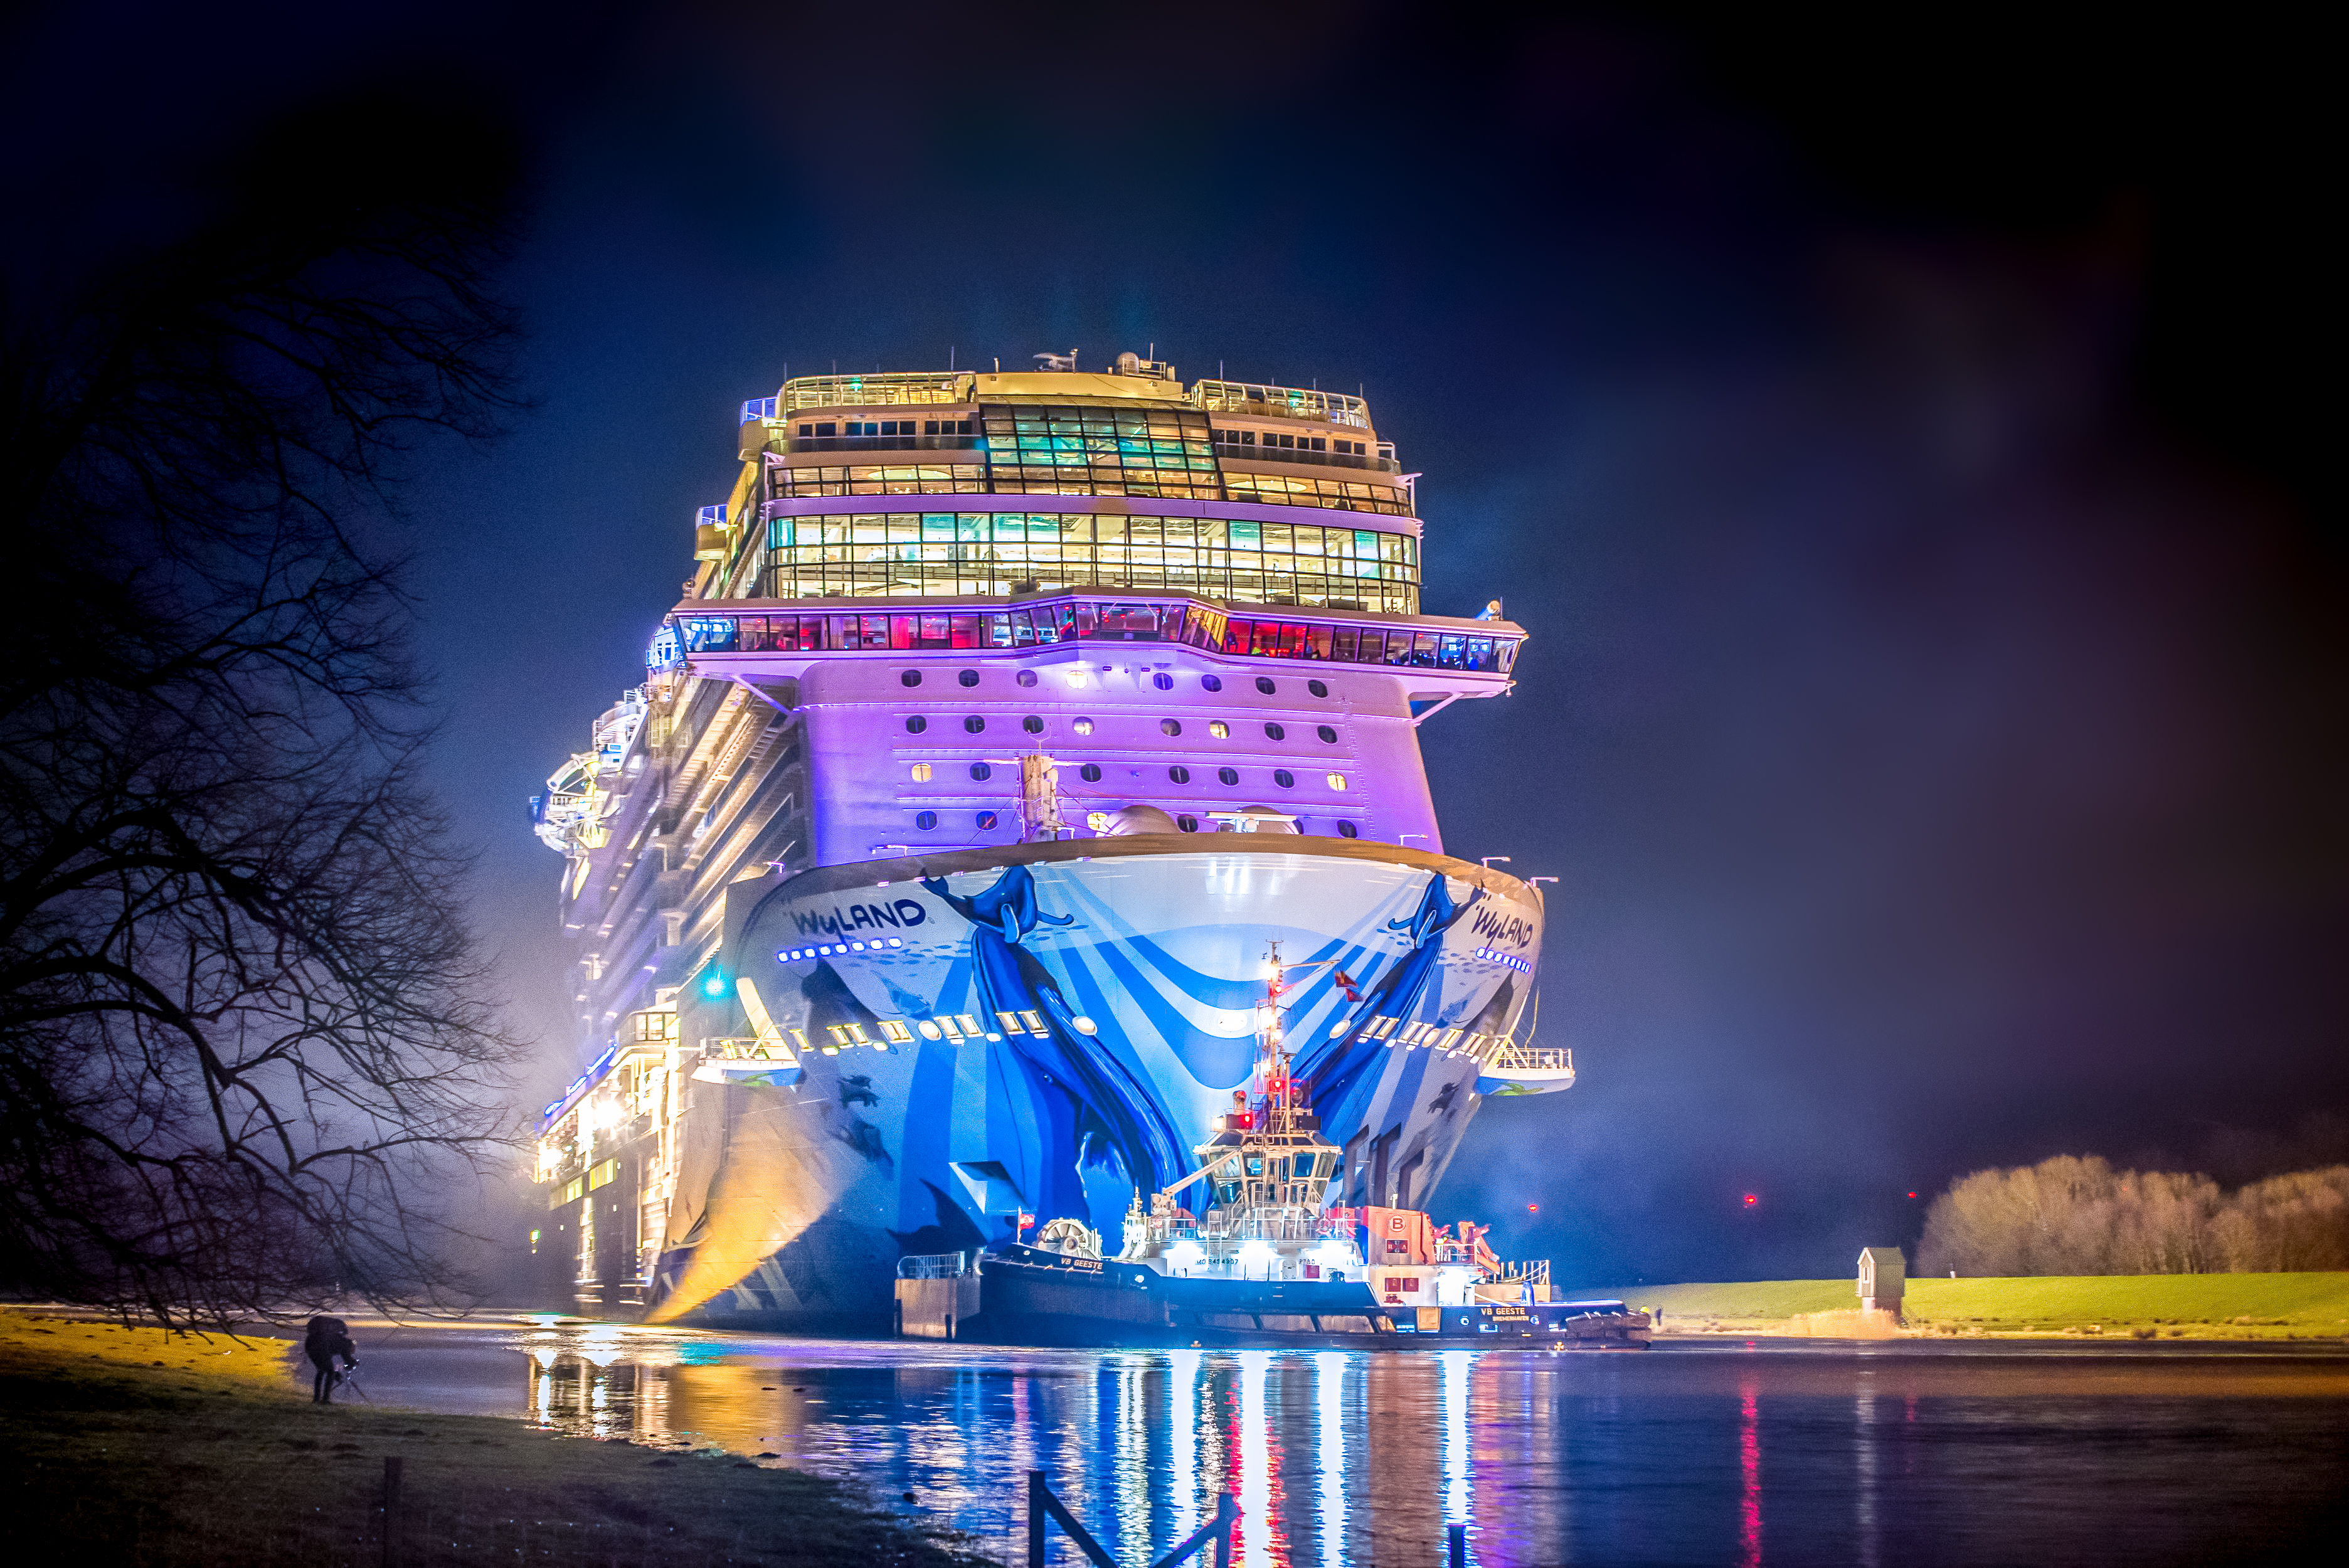 What Does It Mean When A Cruise Ship Completes Its